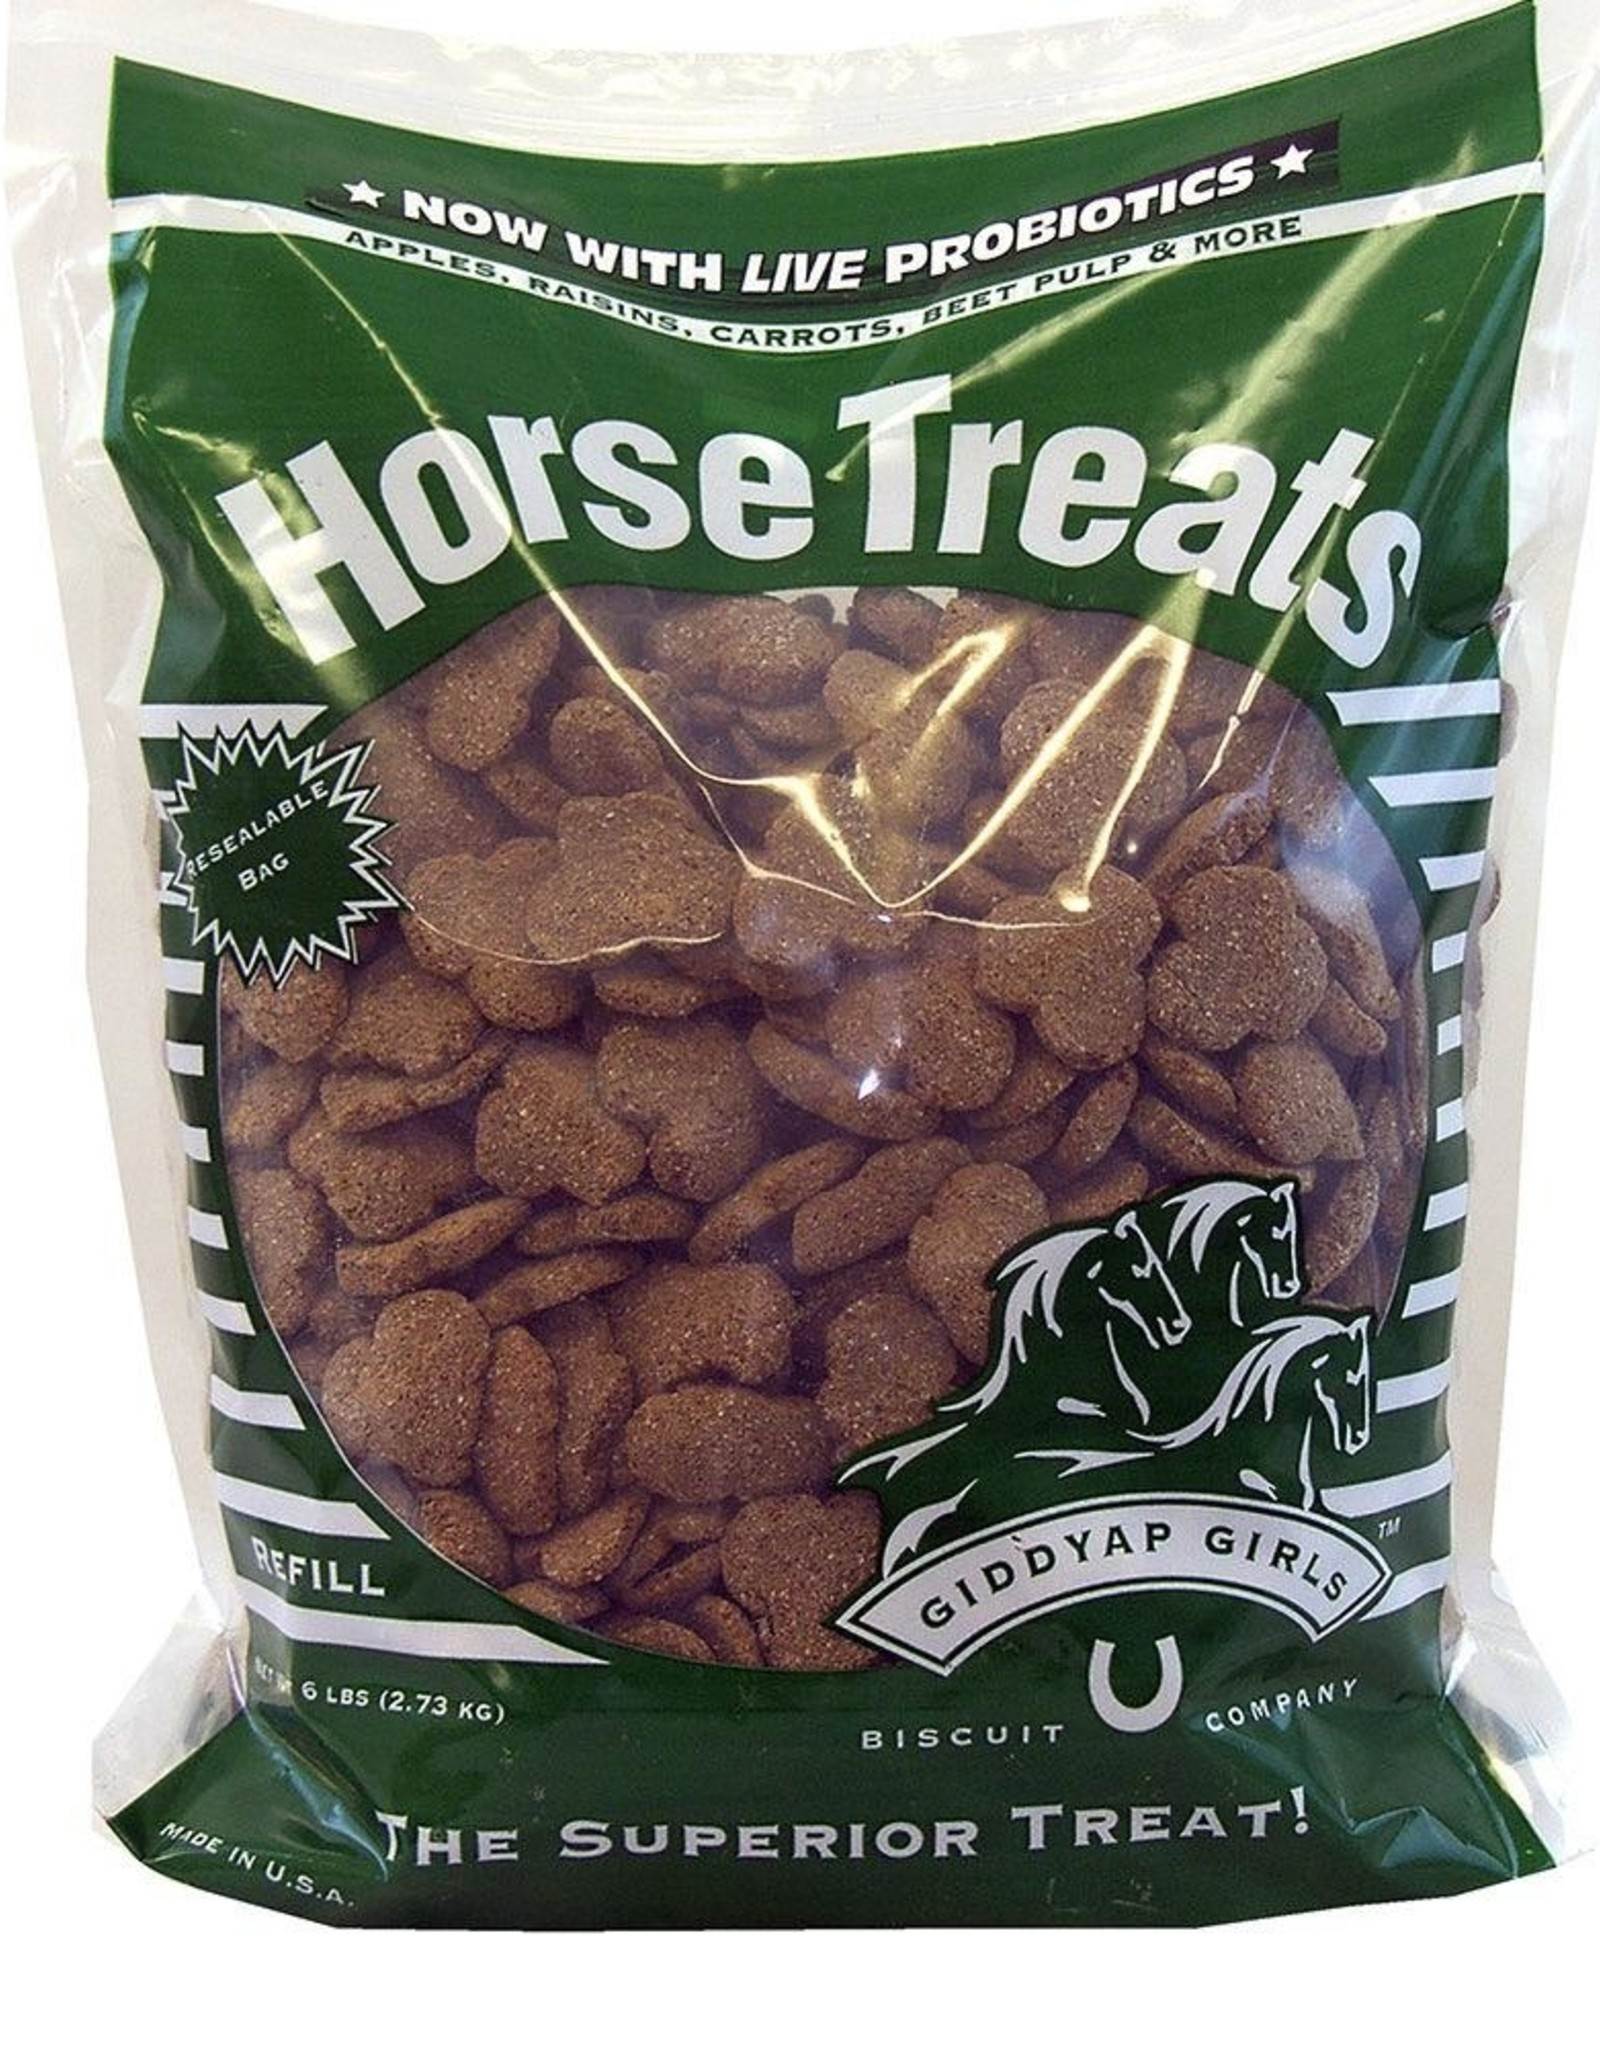 Giddyap Girls Giddyap Girls Premium Horse Treats - 96oz Bag